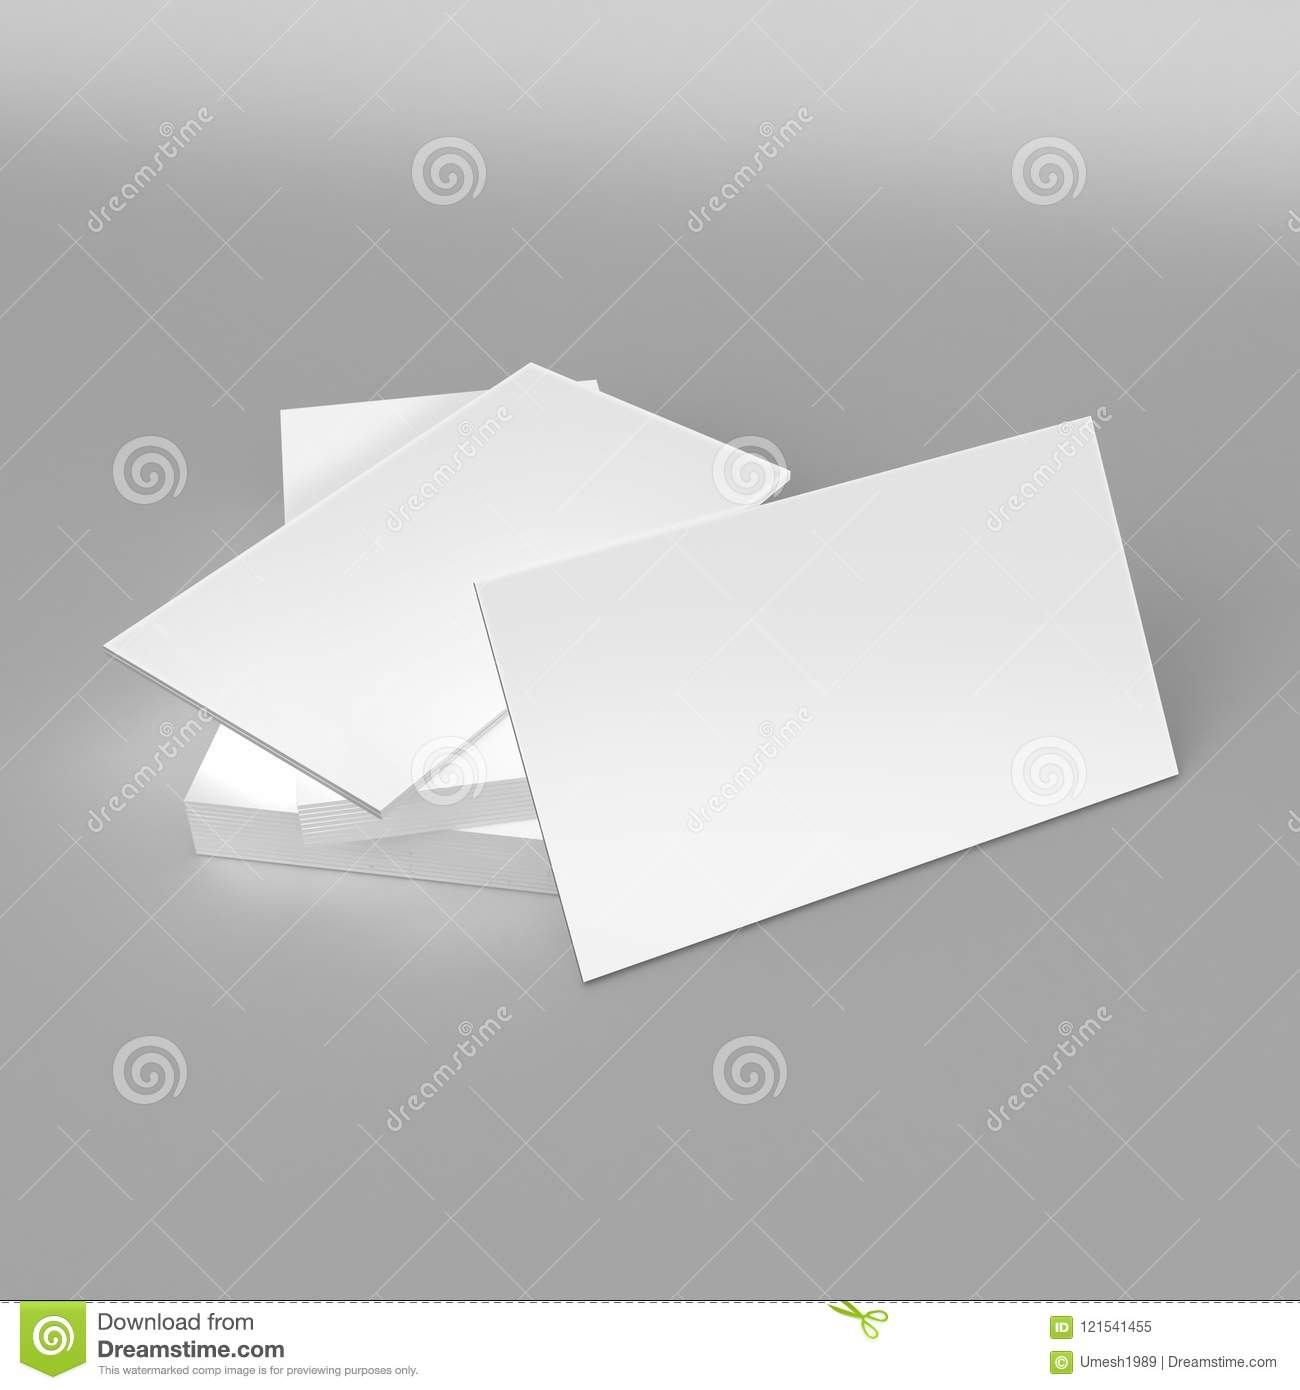 Blank white 3d visiting card template 3d render illustration for blank white 3d visiting card template 3d render illustration for mock up and design presentation cheaphphosting Gallery